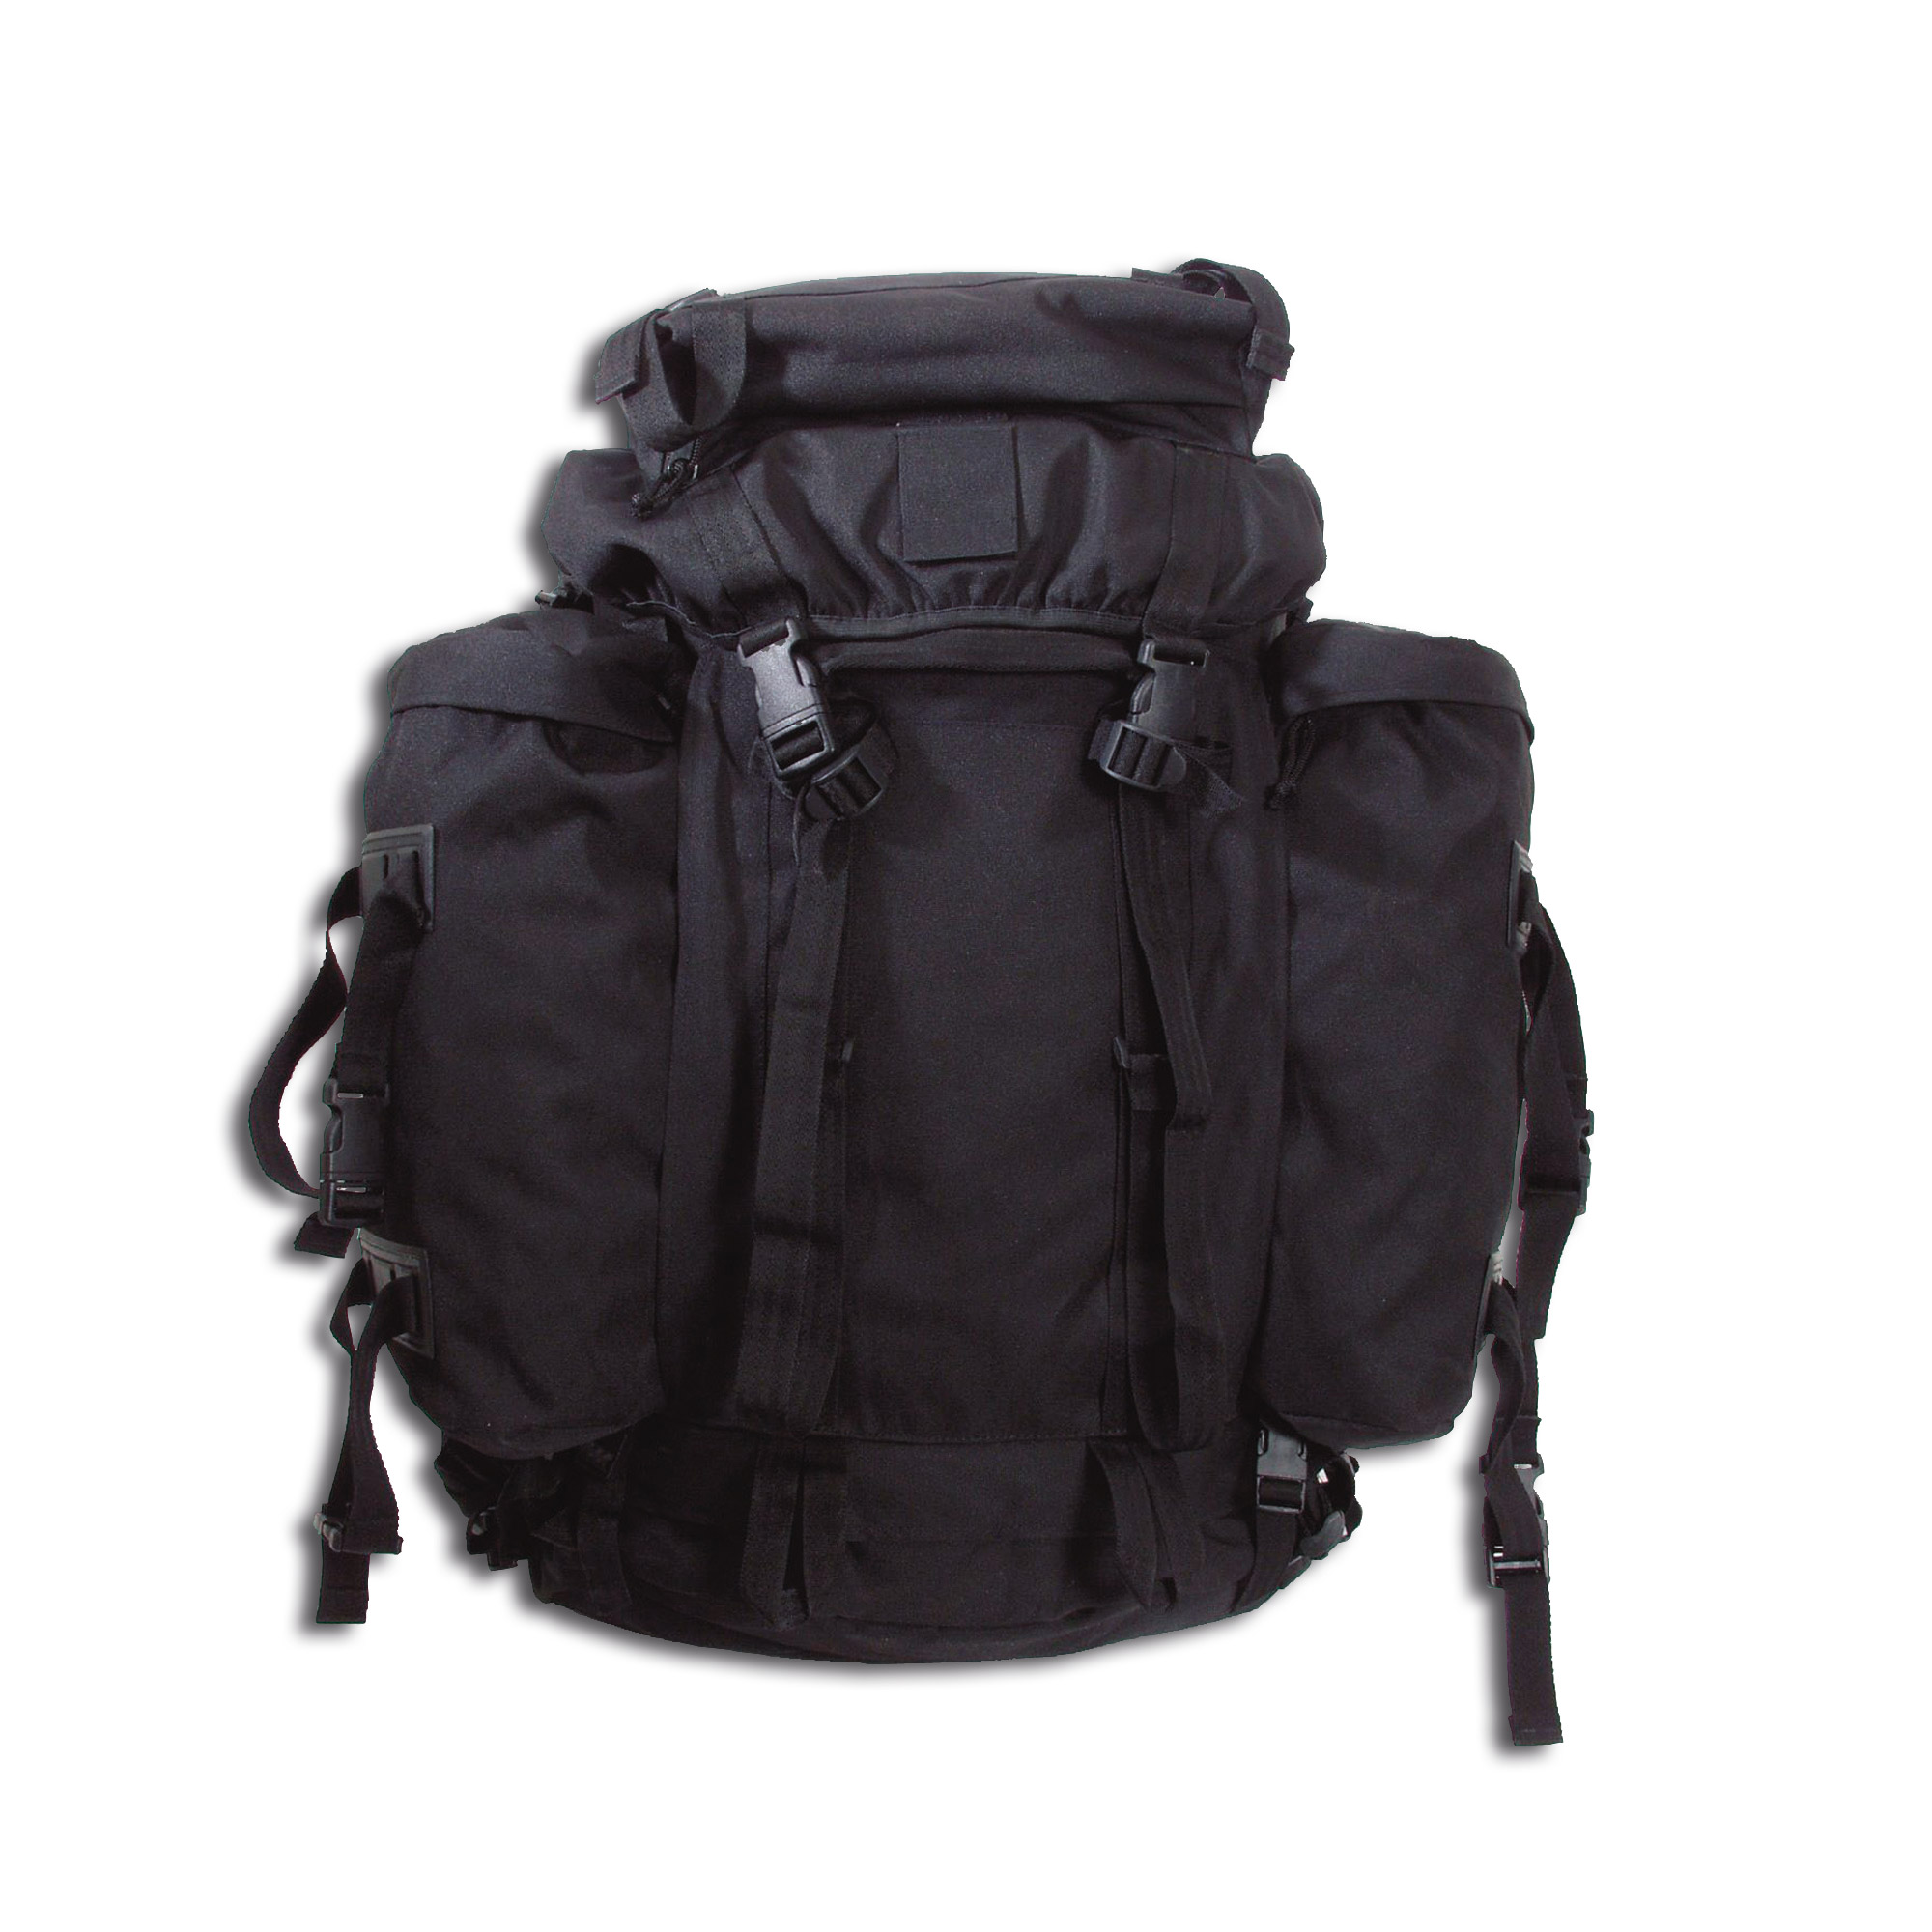 Backpack Mountain black 100L